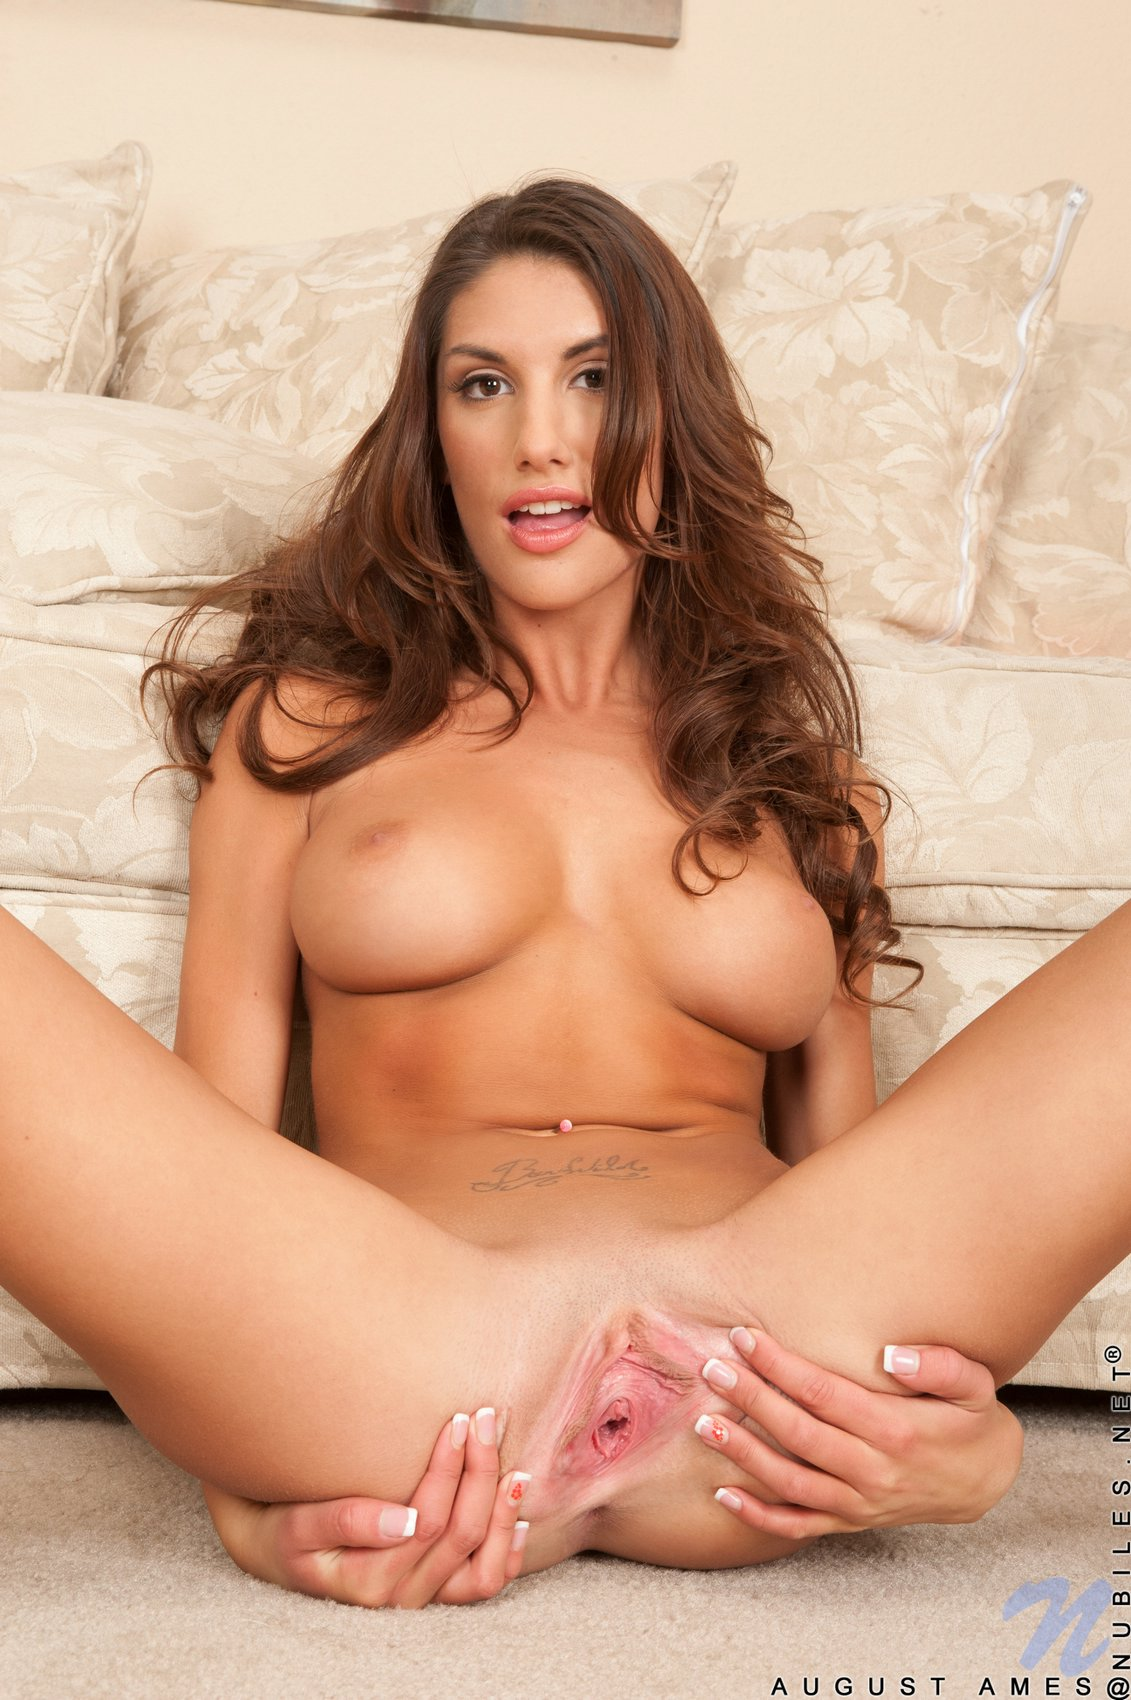 Girls eating pussy august ames